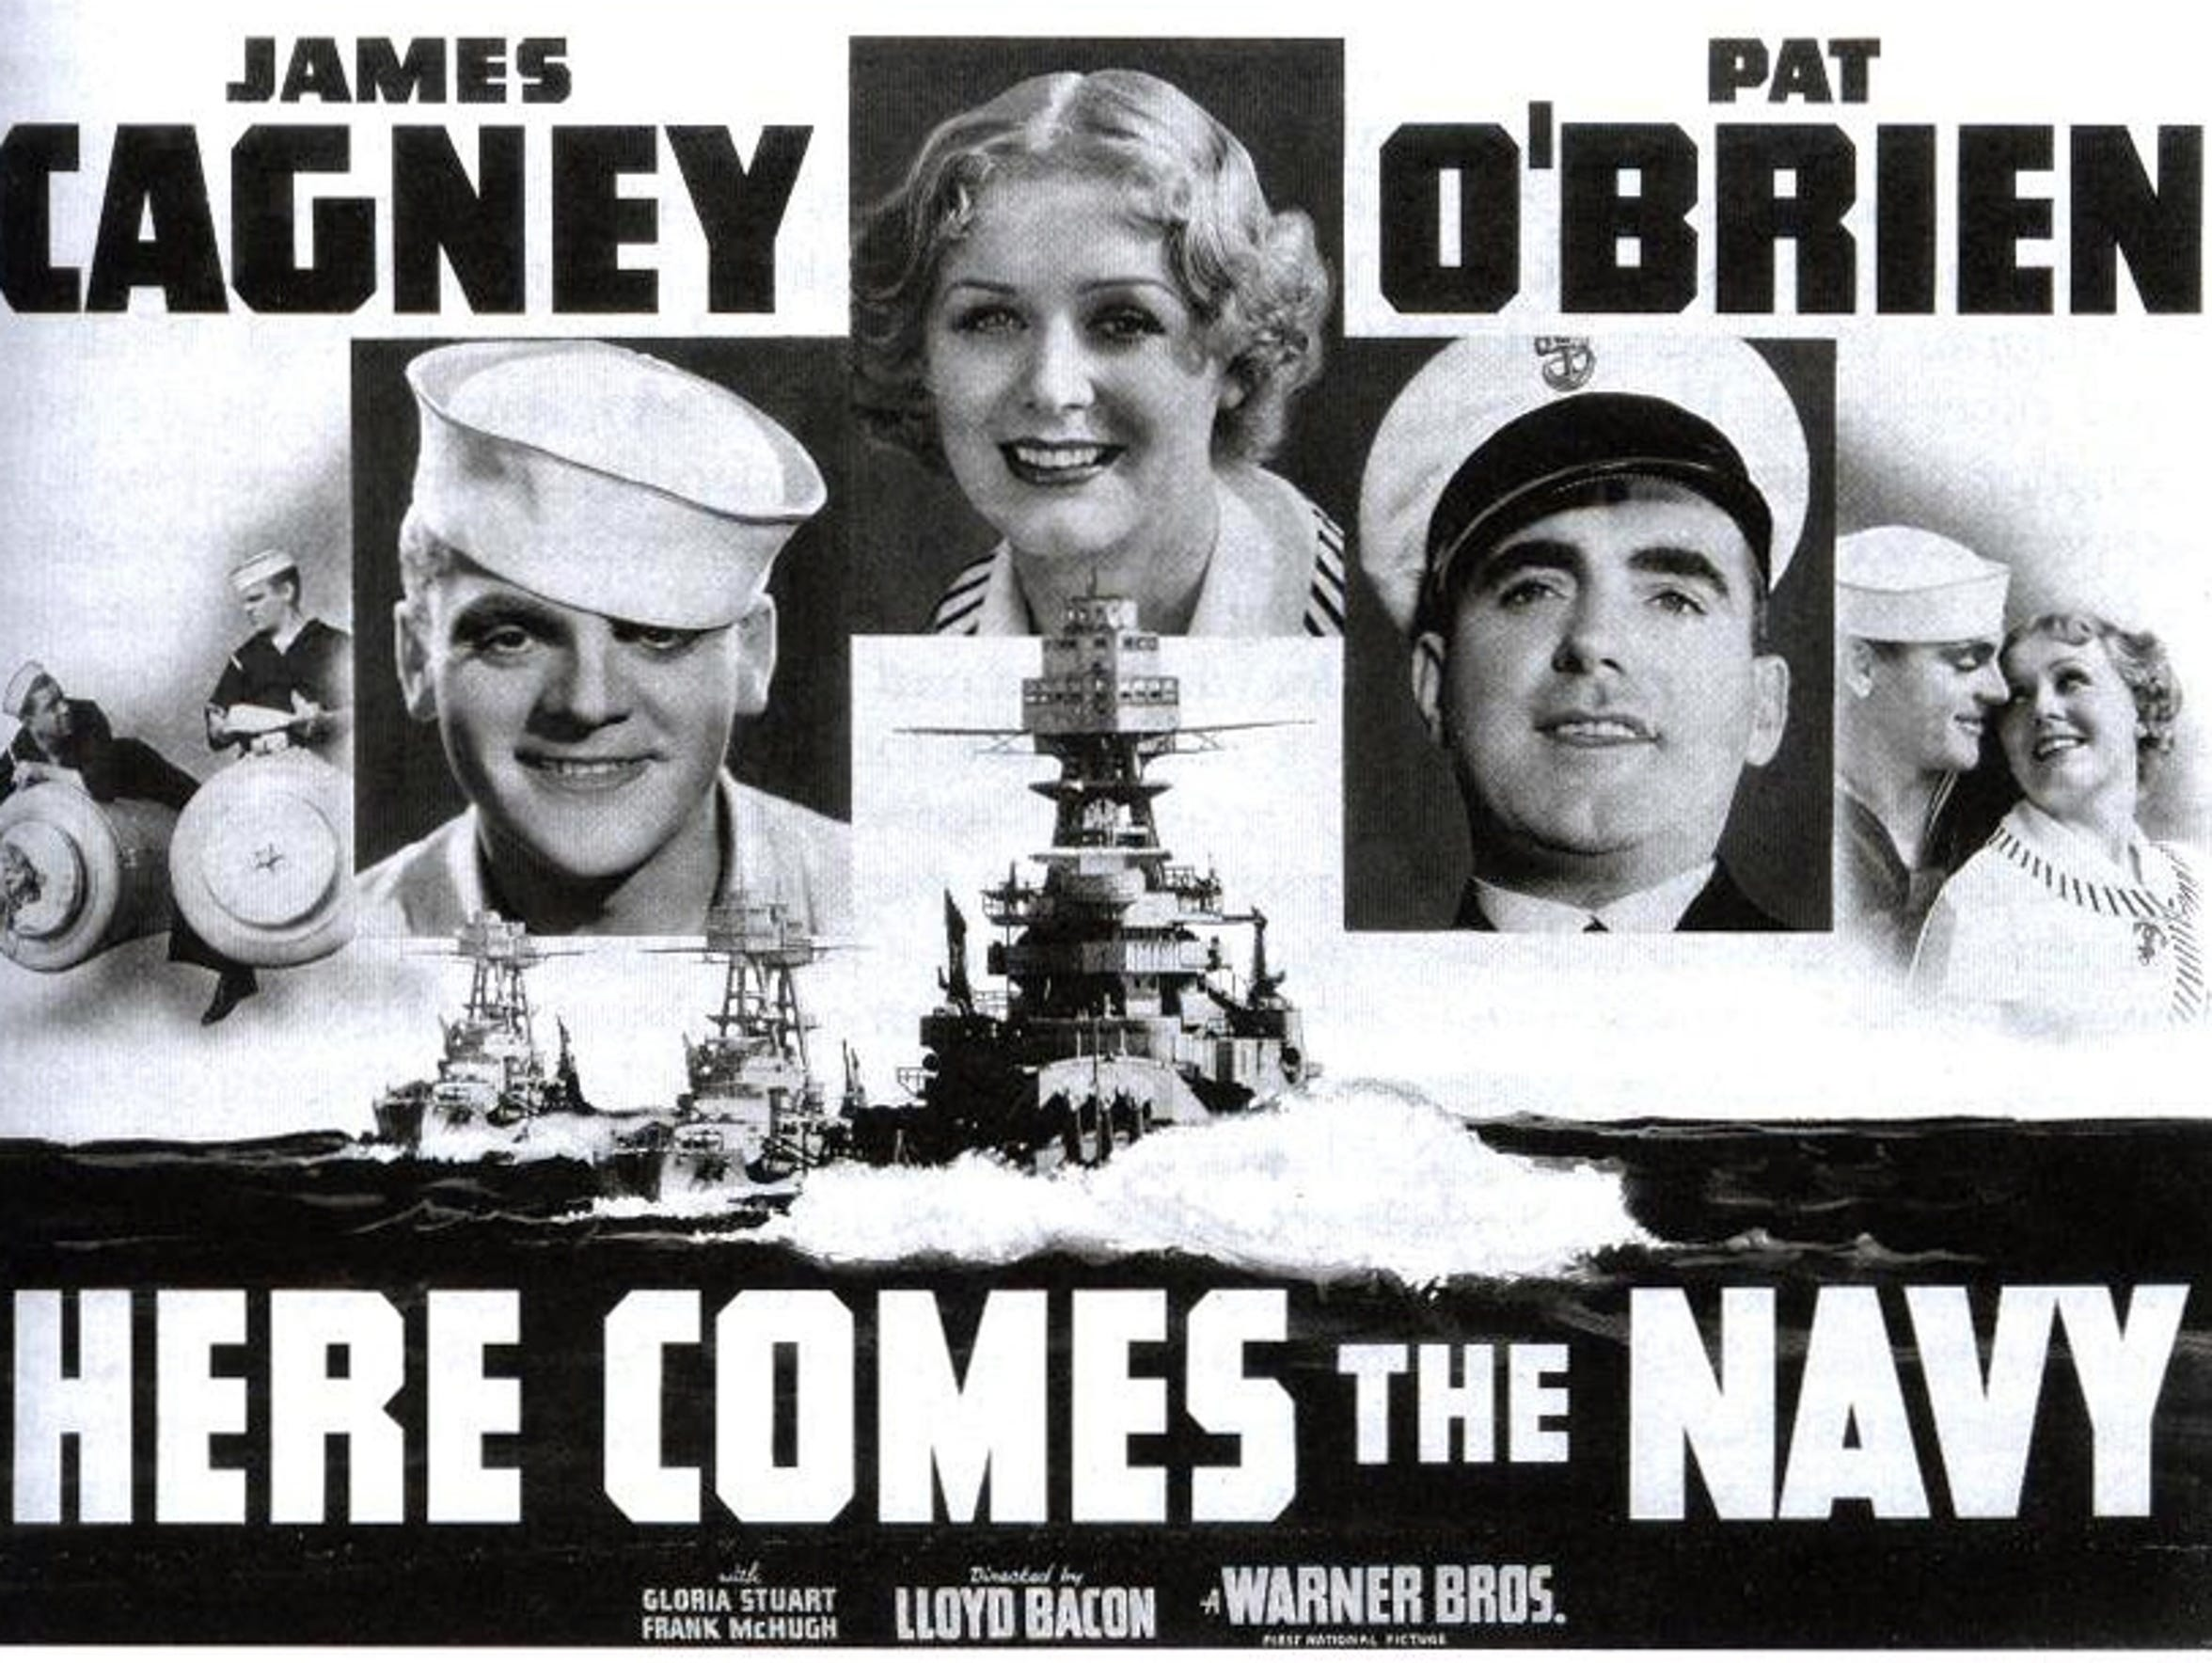 Movie poster for the 1934 film starring James Cagney.